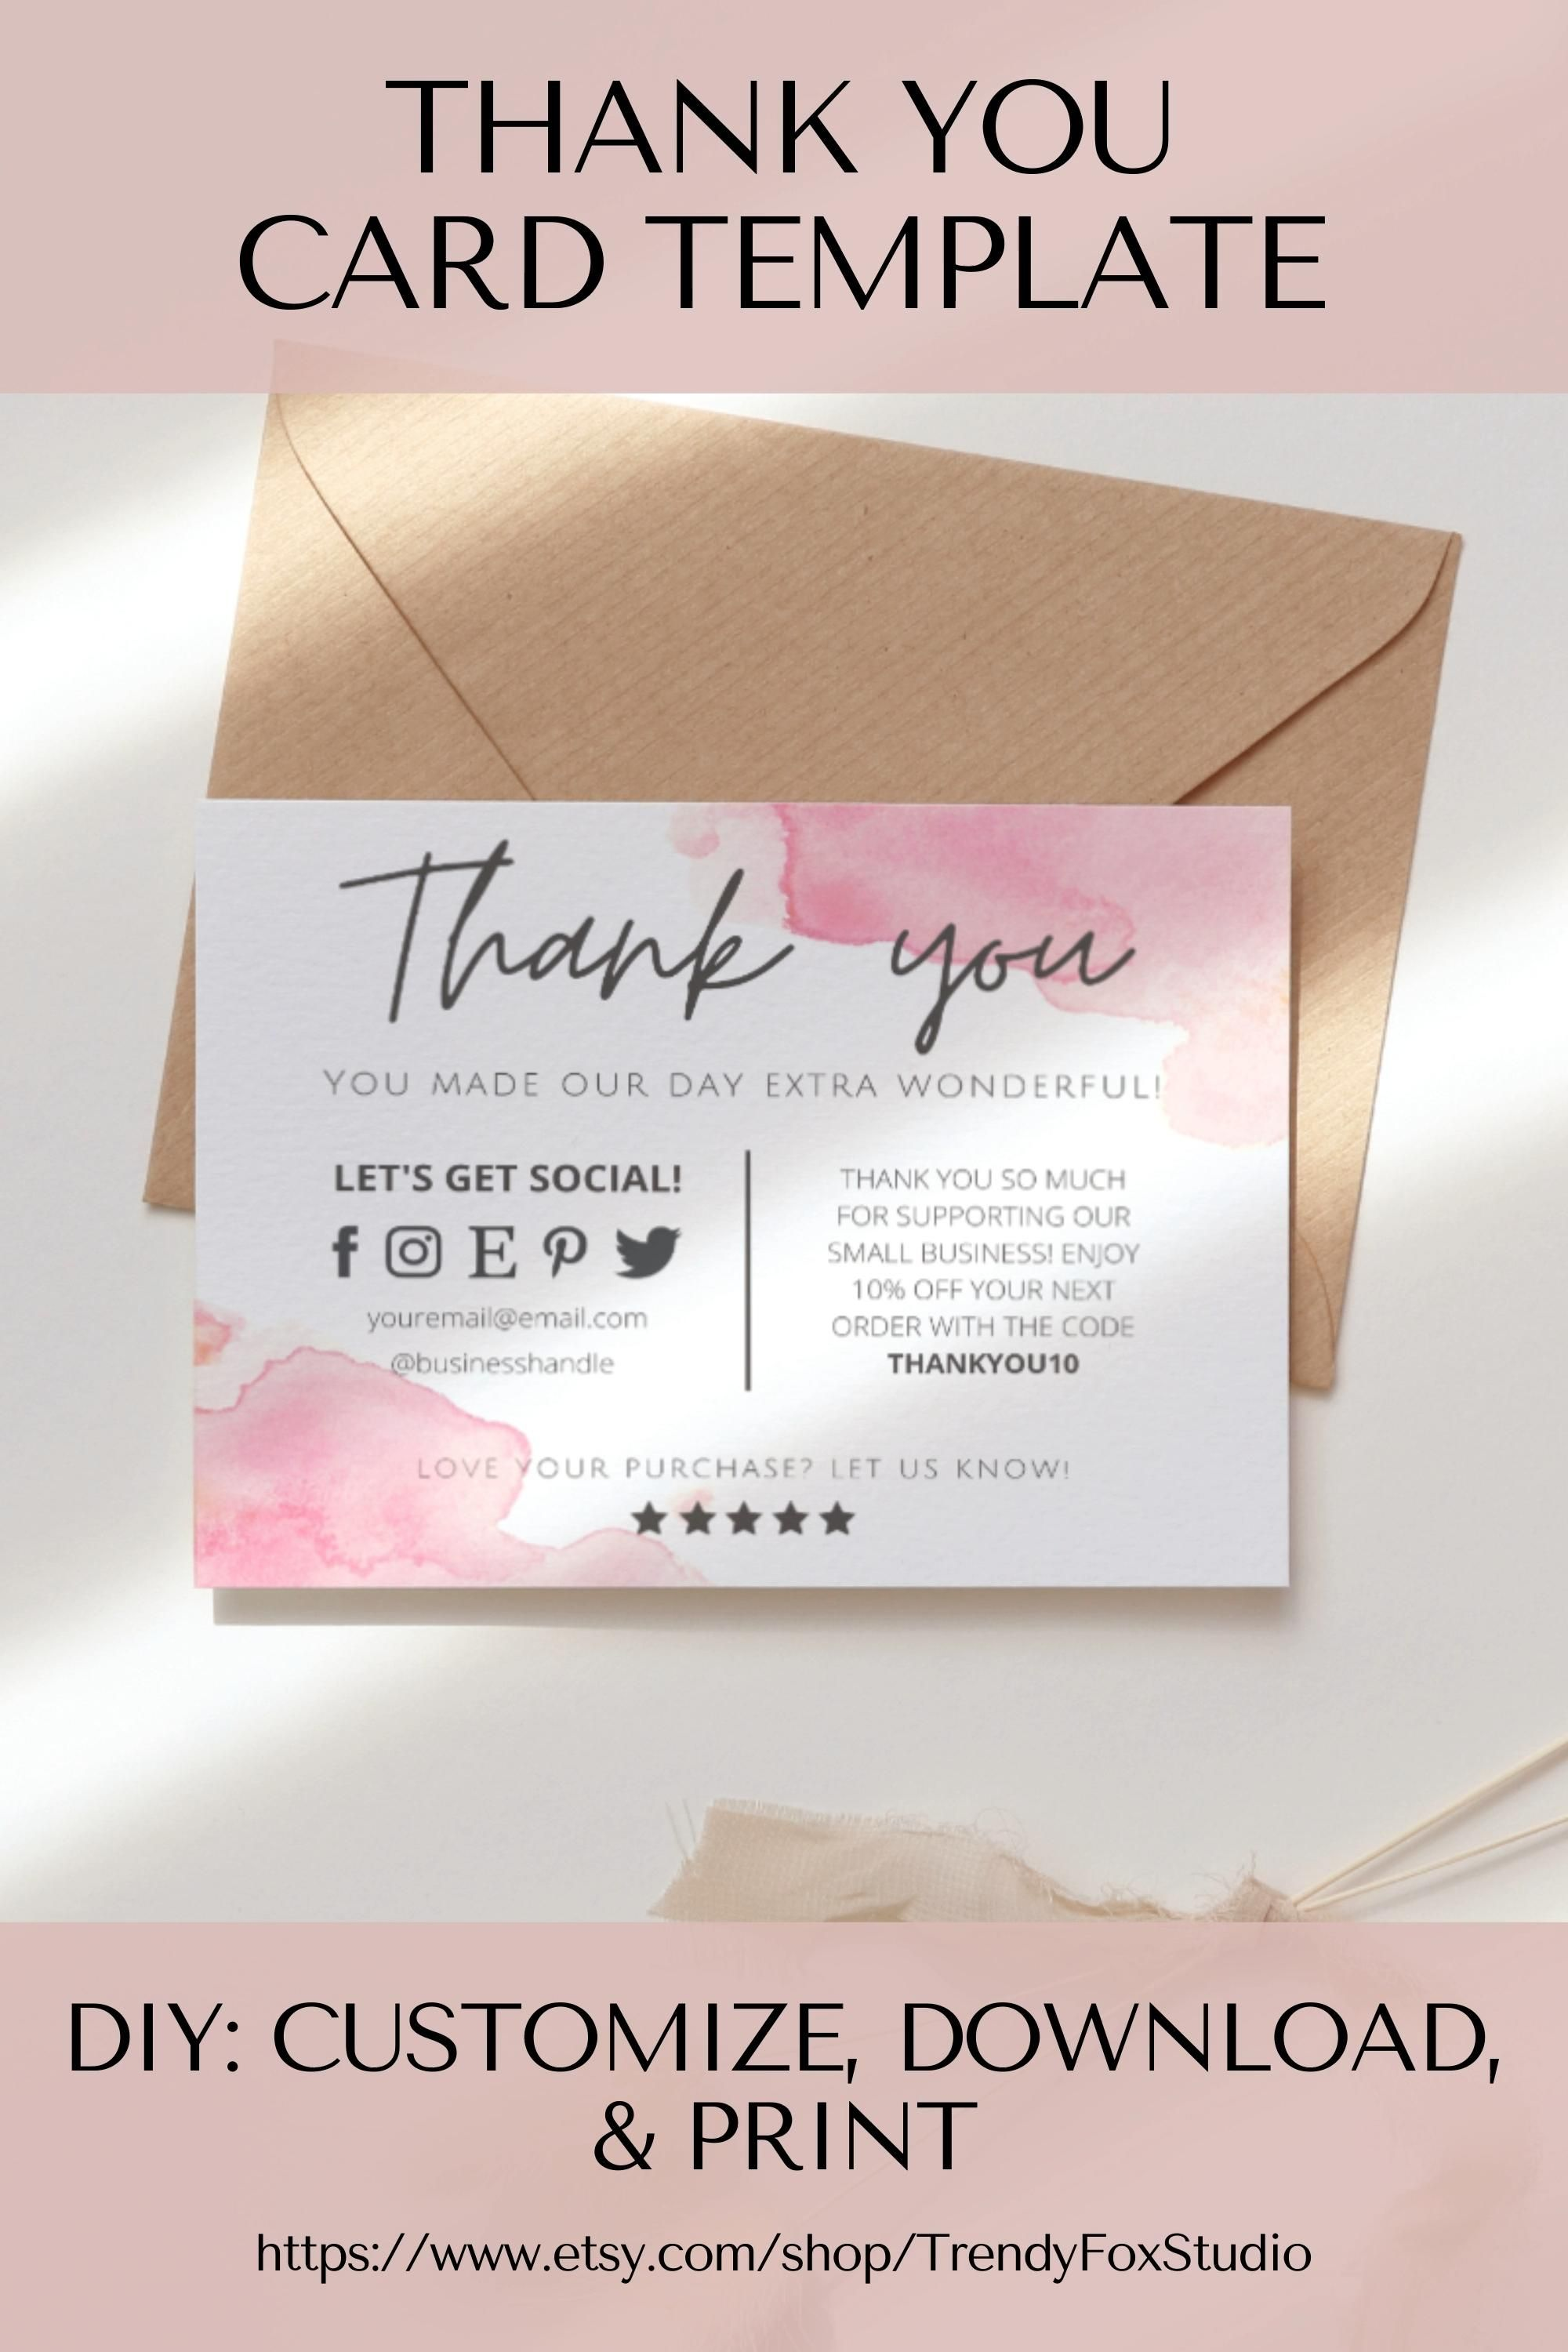 5.5 x 4.25 Cards DIGITAL DOWNLOAD Editable Simple Minimalist Template Design Thank You Business /& Candle Care Card Template